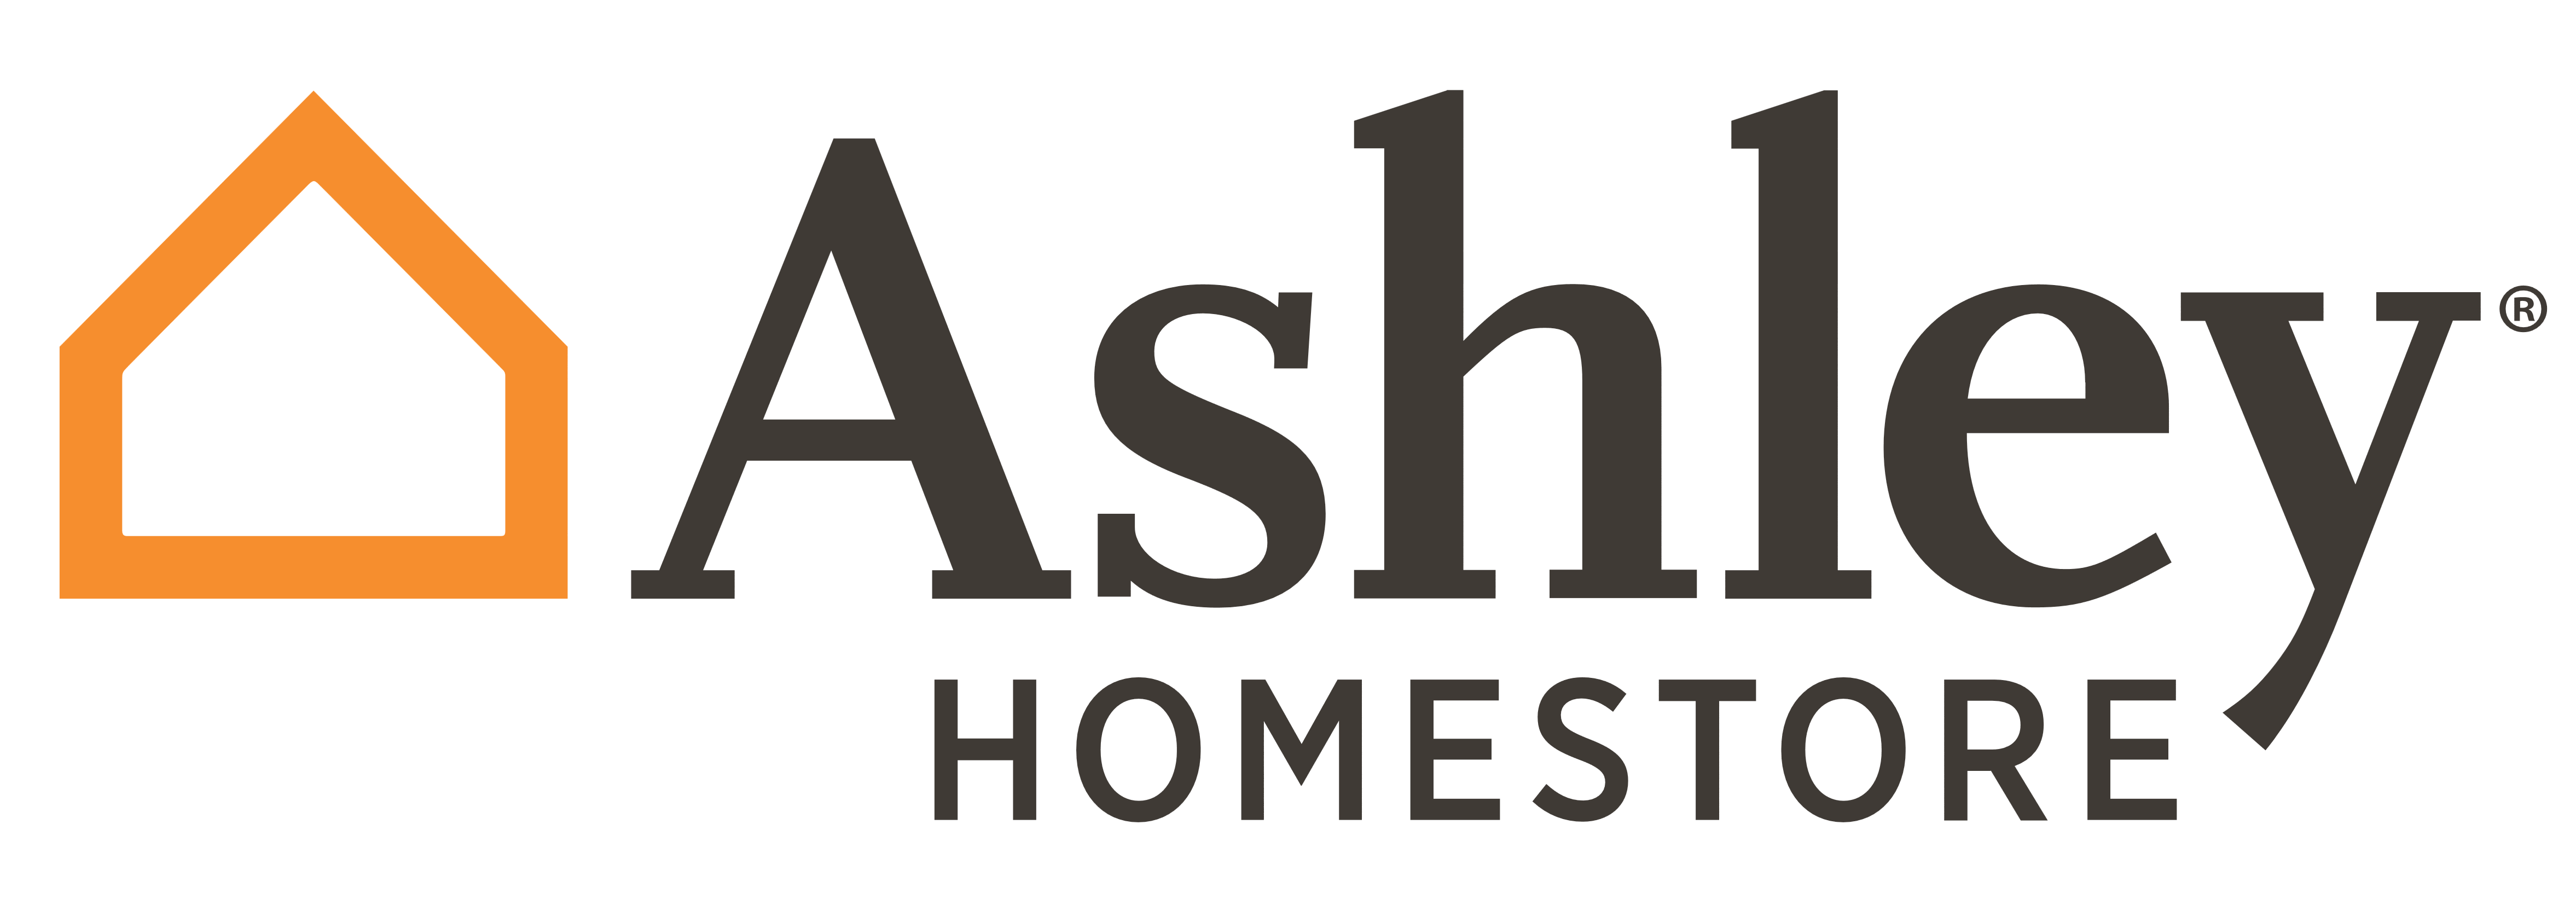 Large Home Decor Ashley Homestore Logos Download